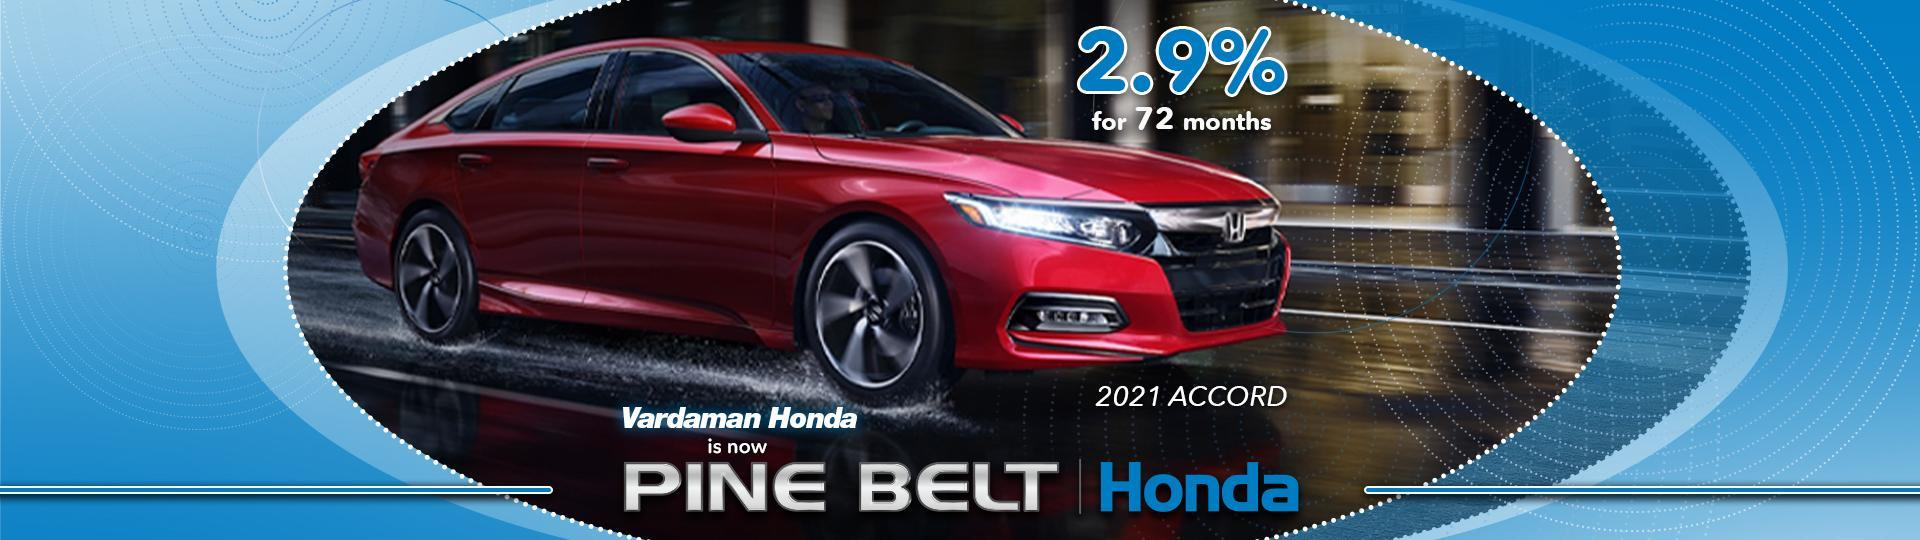 2021 Honda Accord Finance Offer